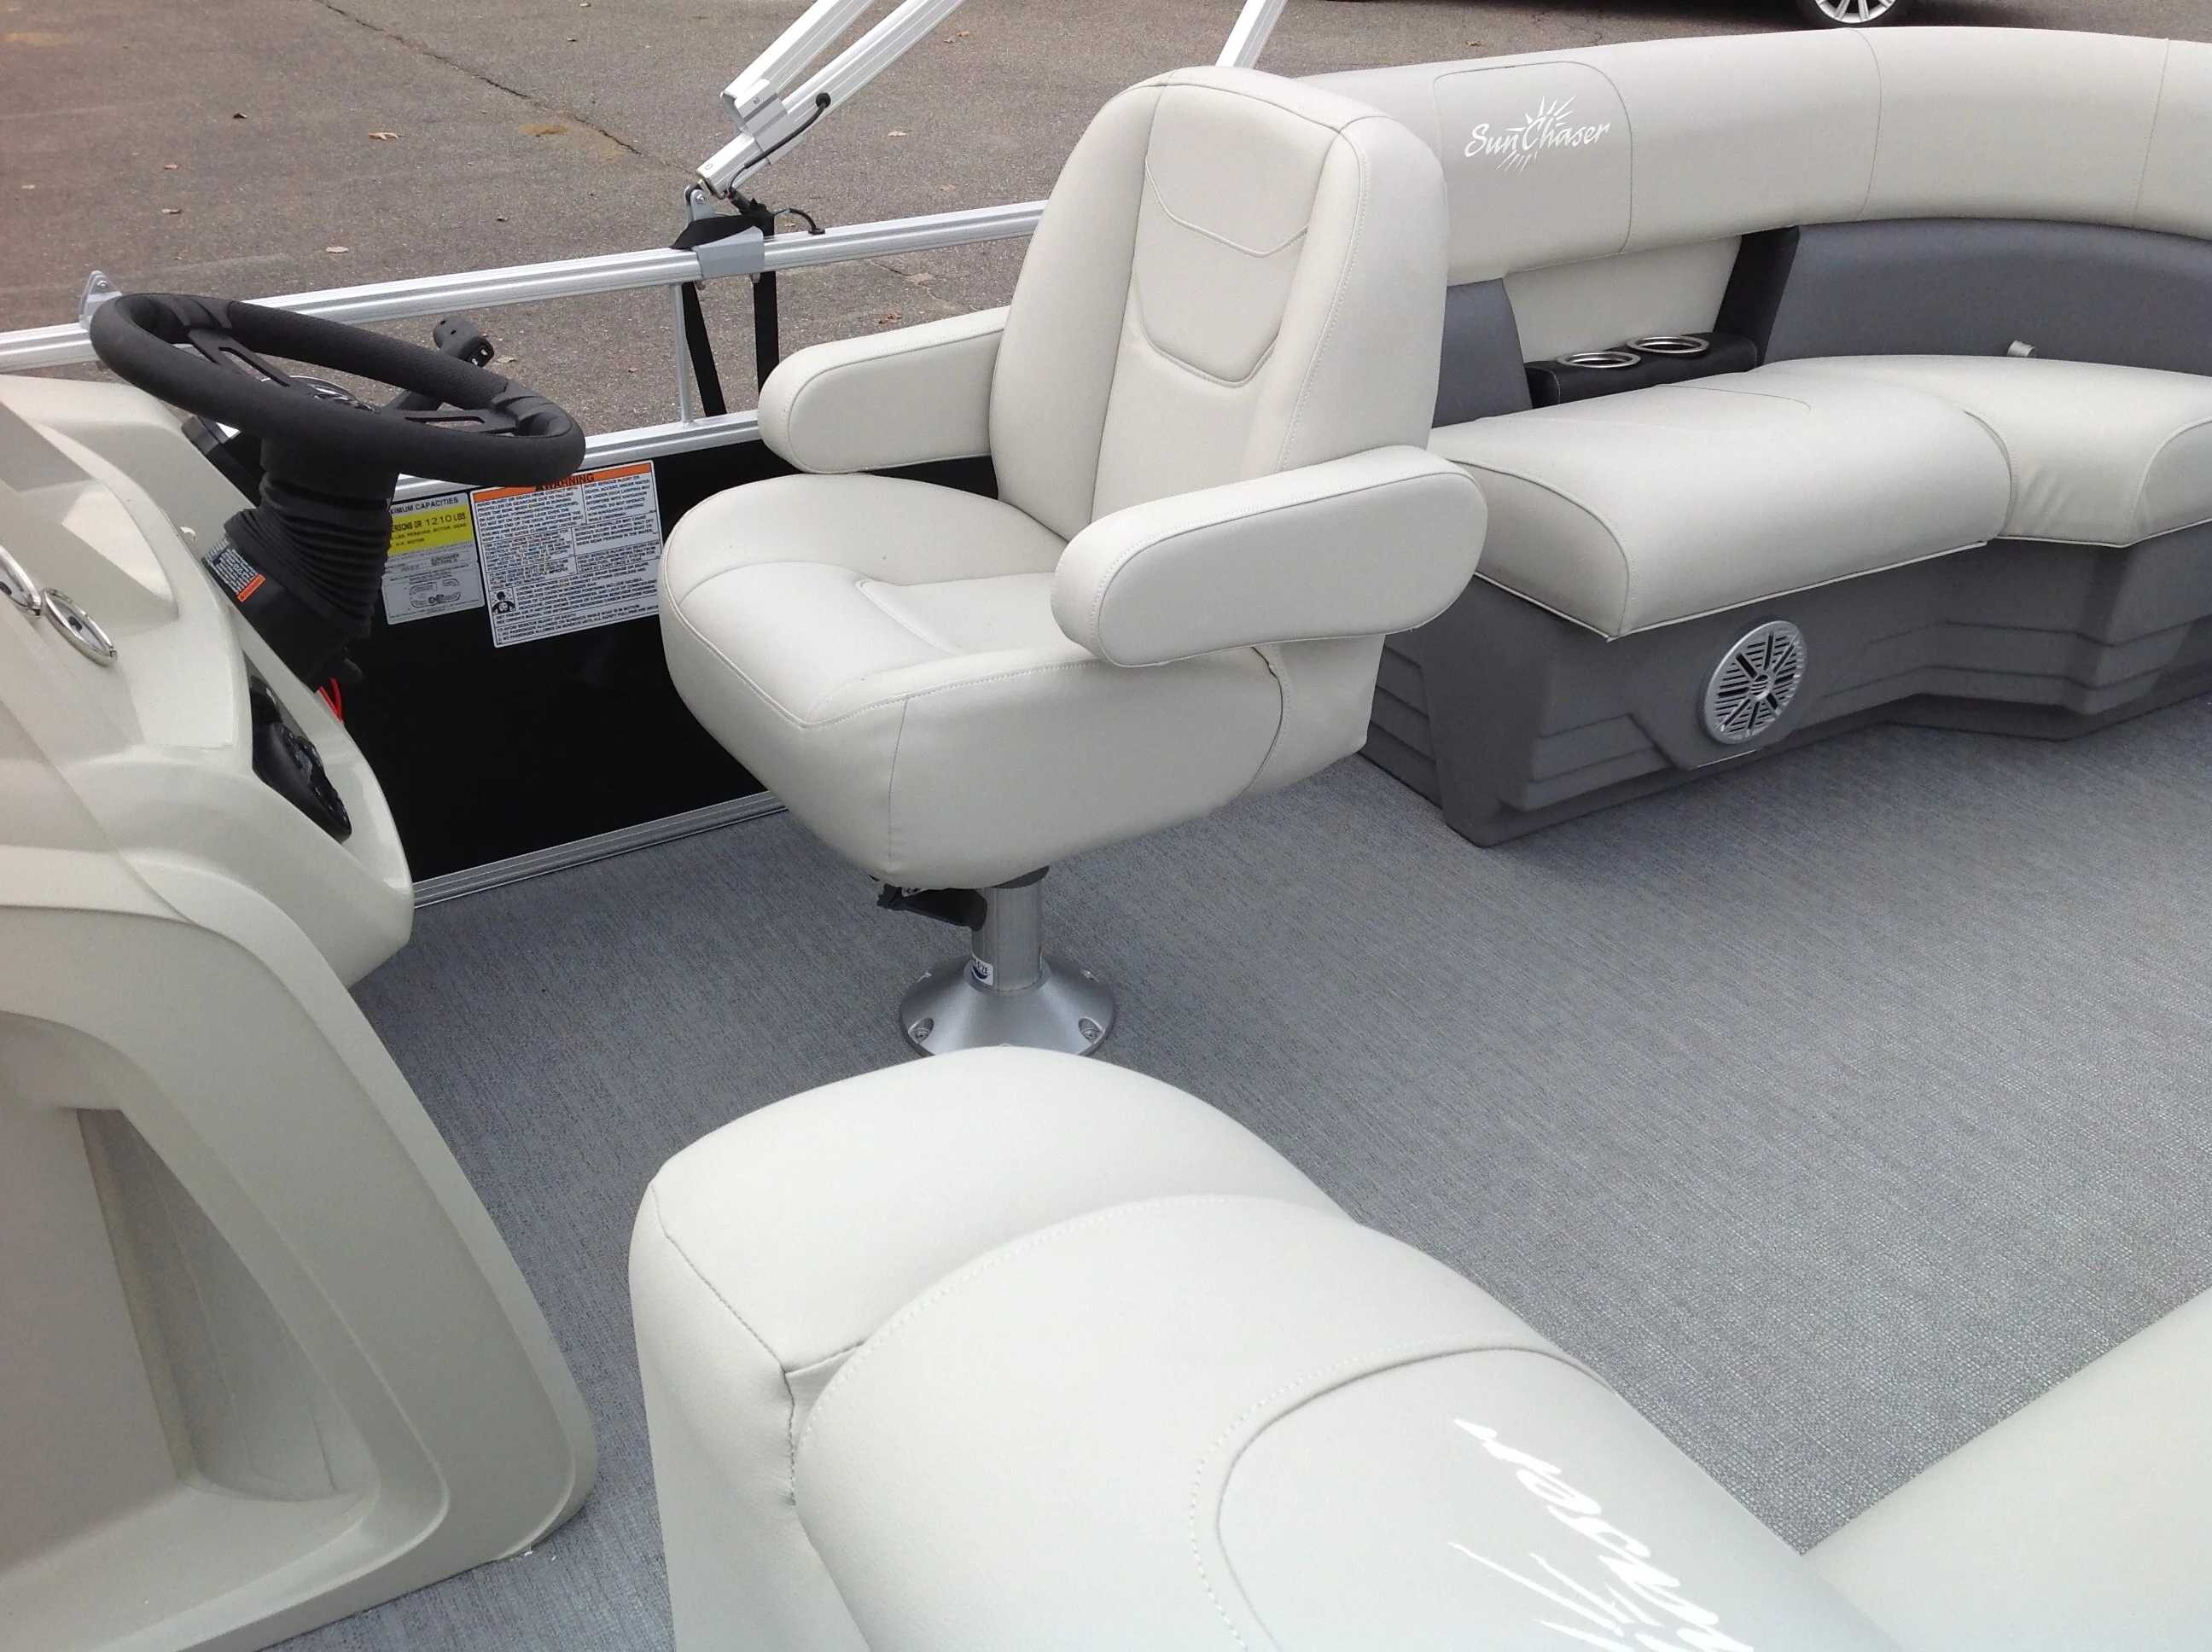 2021 SunChaser boat for sale, model of the boat is Sunchaser & Image # 8 of 10